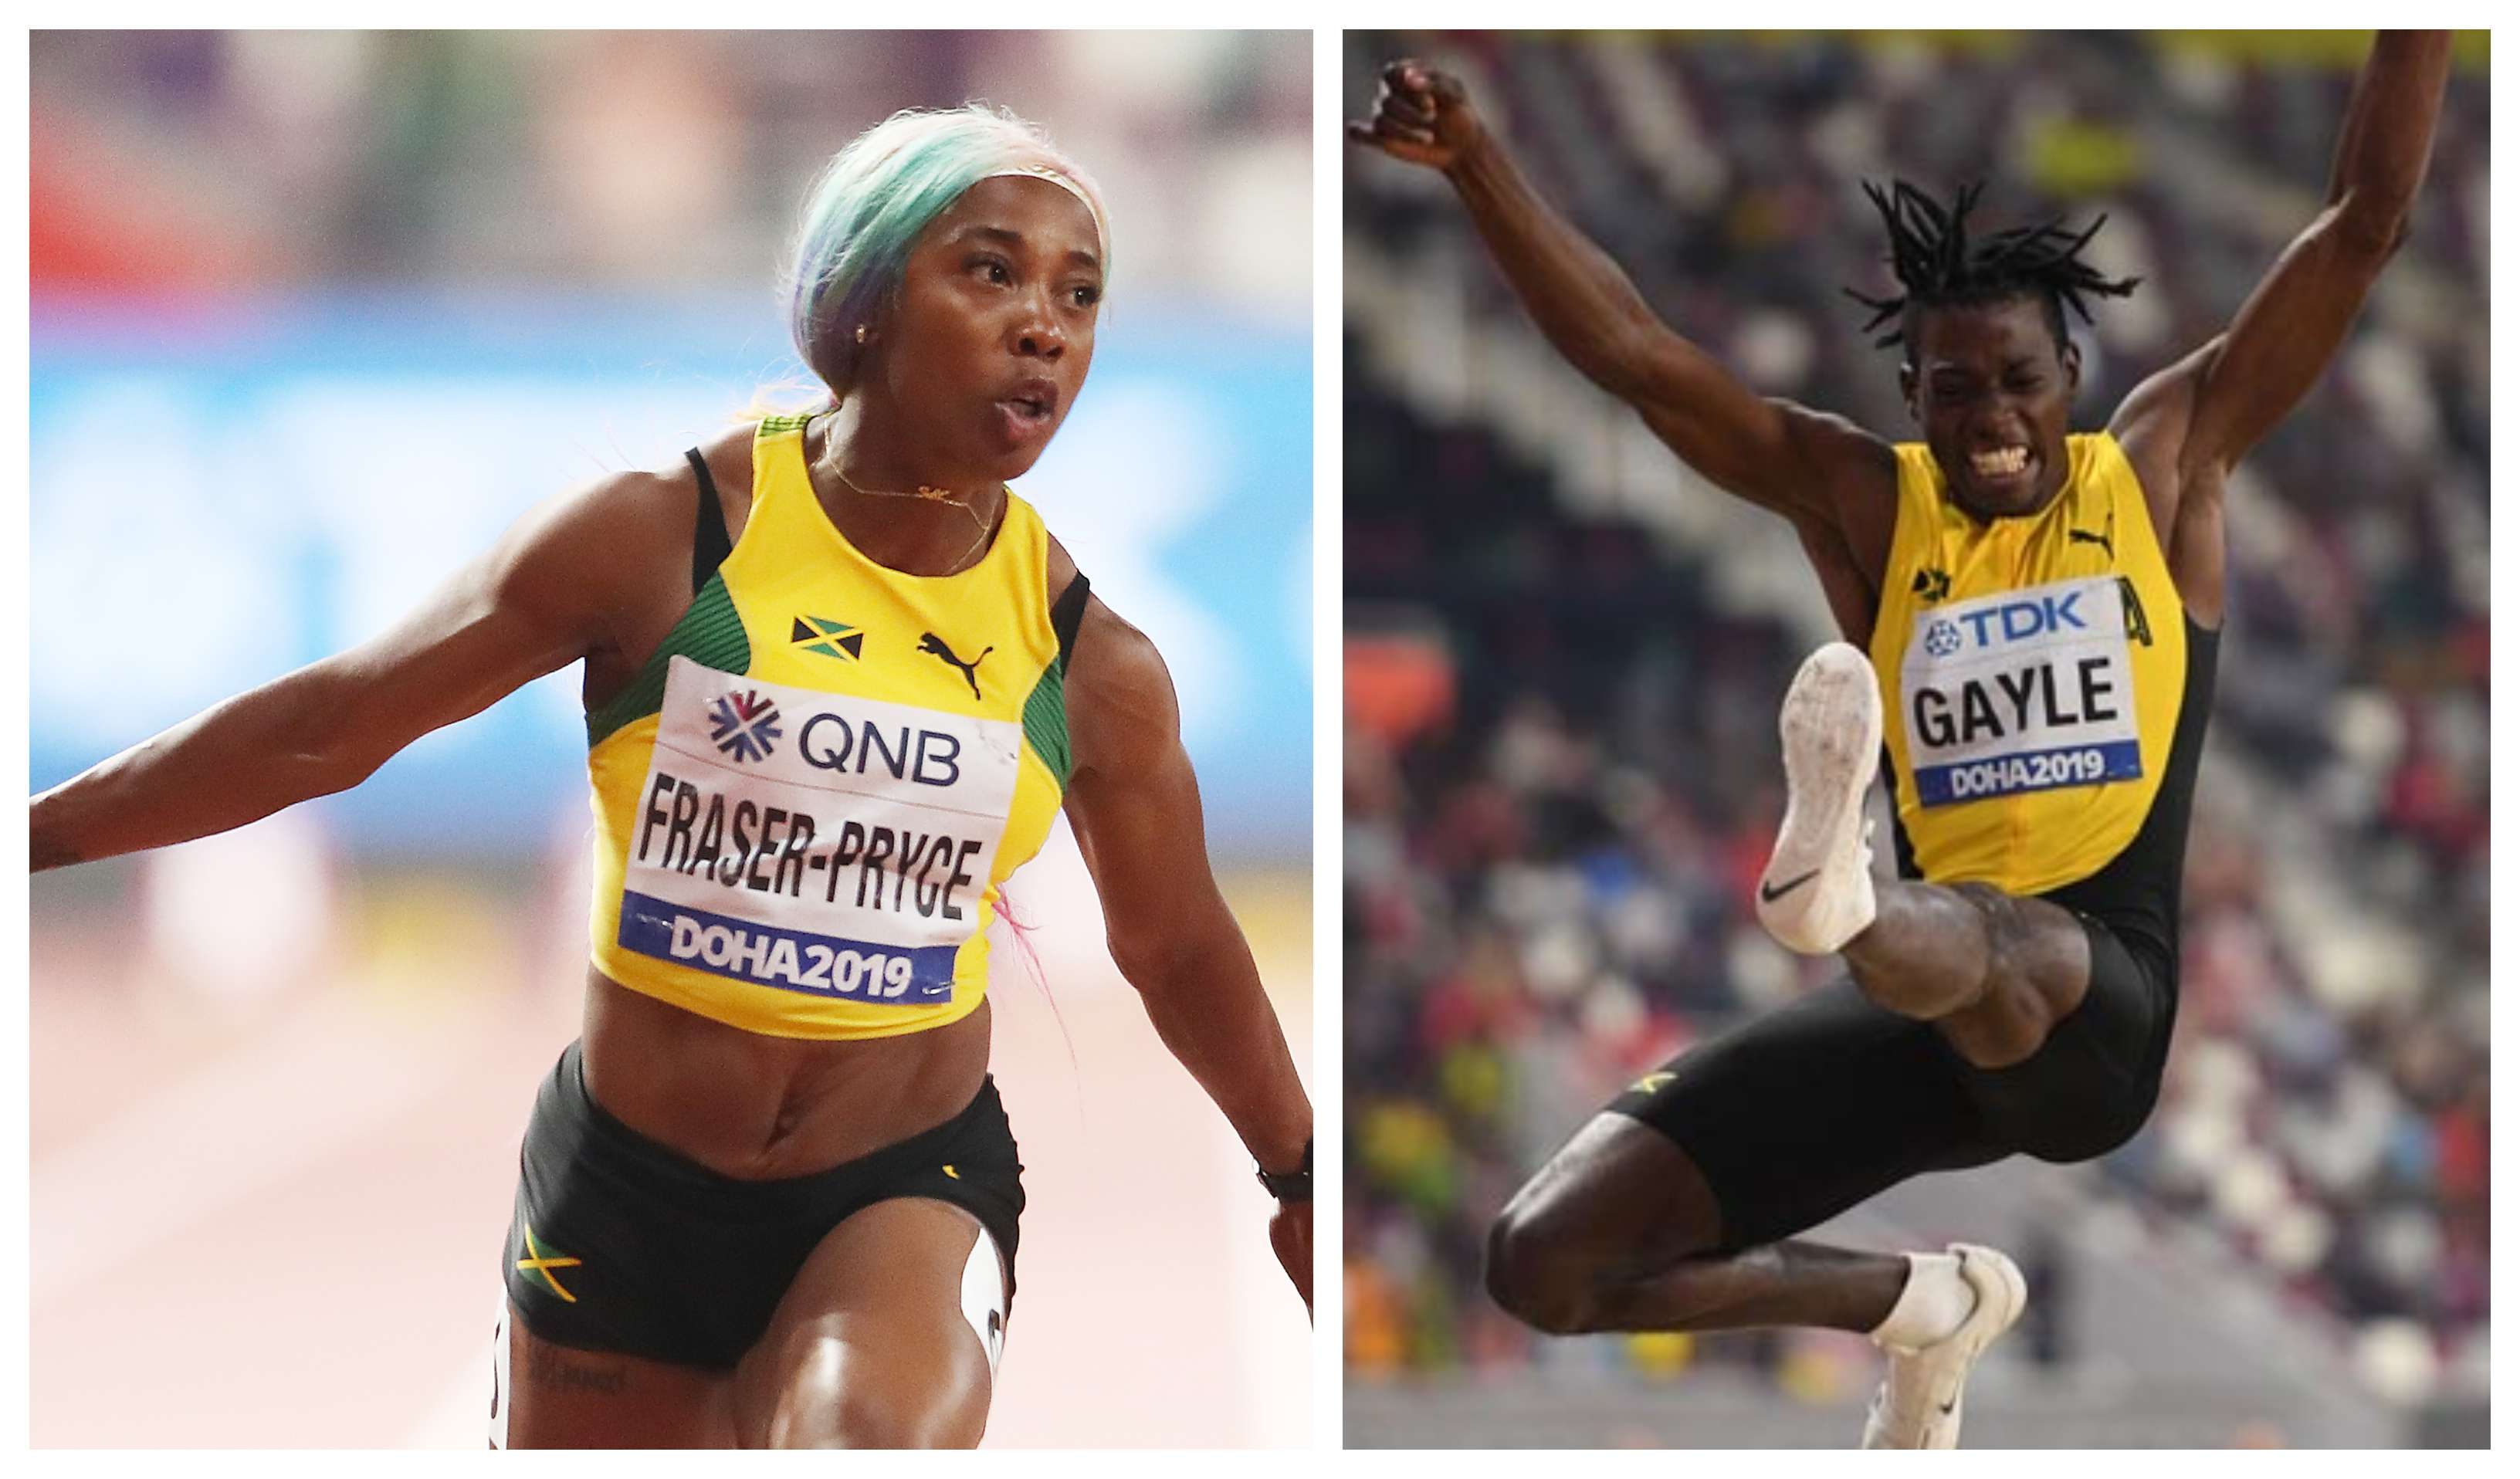 Tajay Gayle, Fraser-Pryce Lead 2019 Sports Awards Nominations